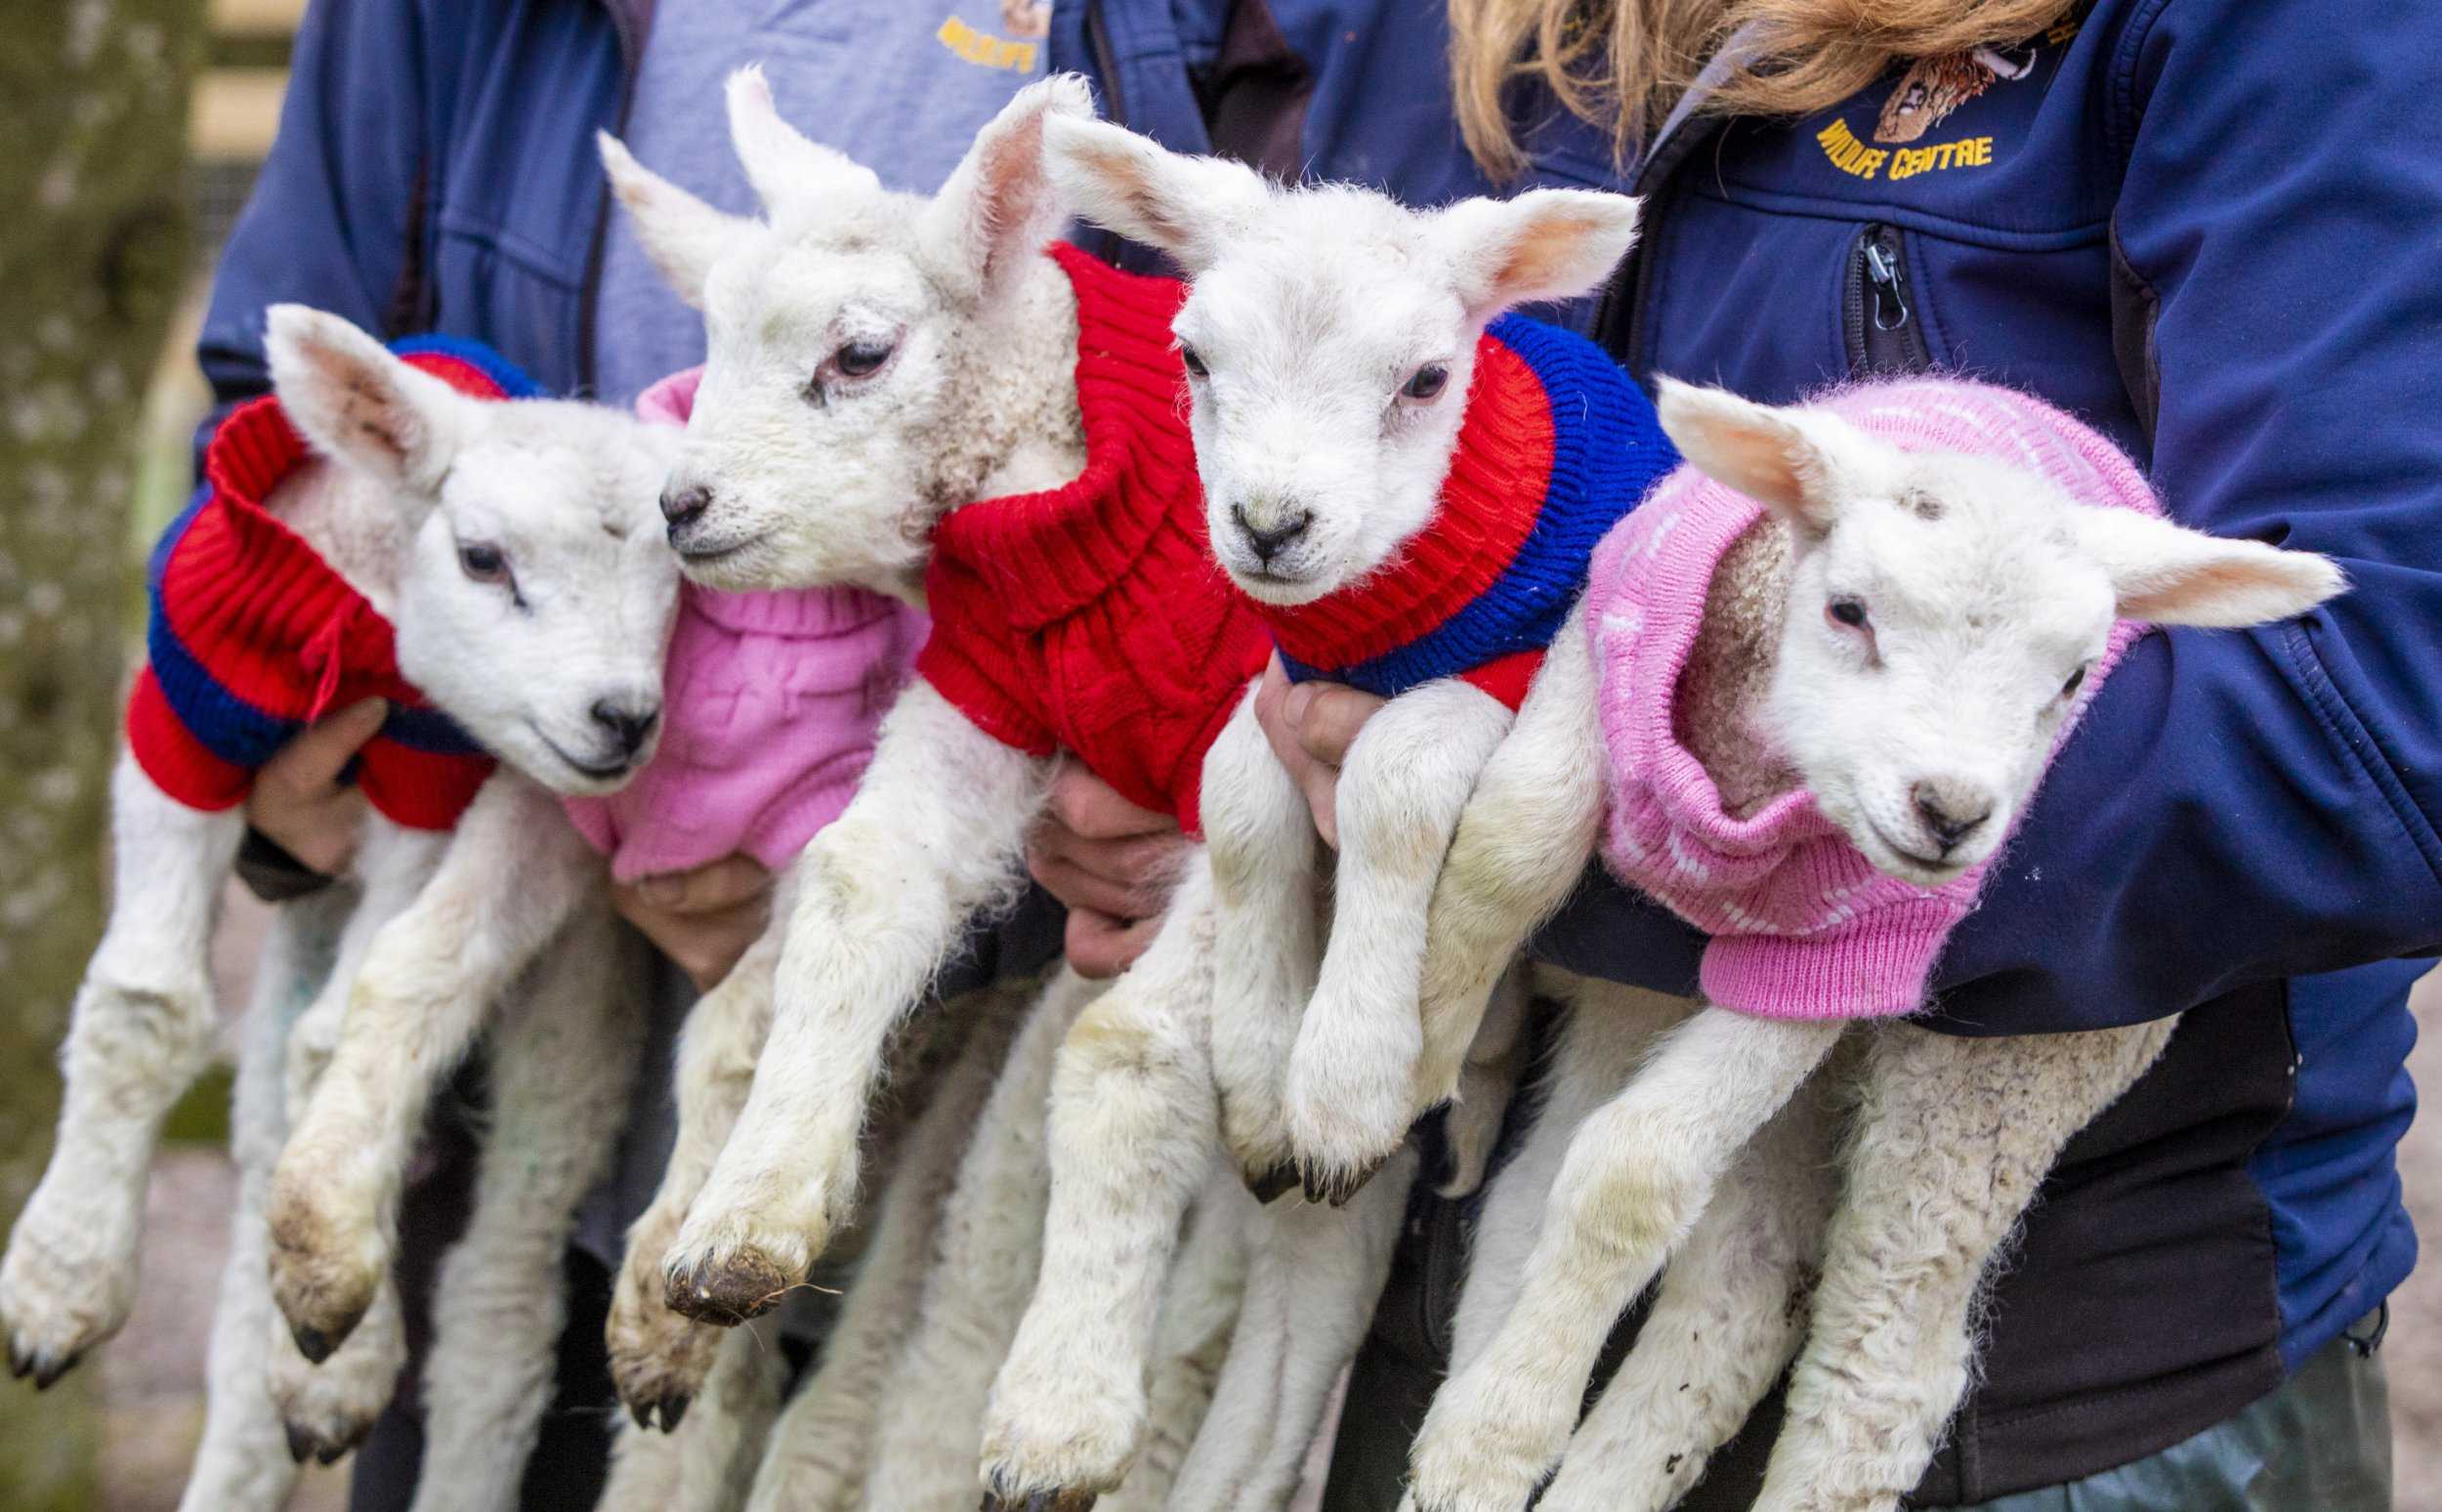 These five adorable baby lambs wearing woolly jumpers will make your day